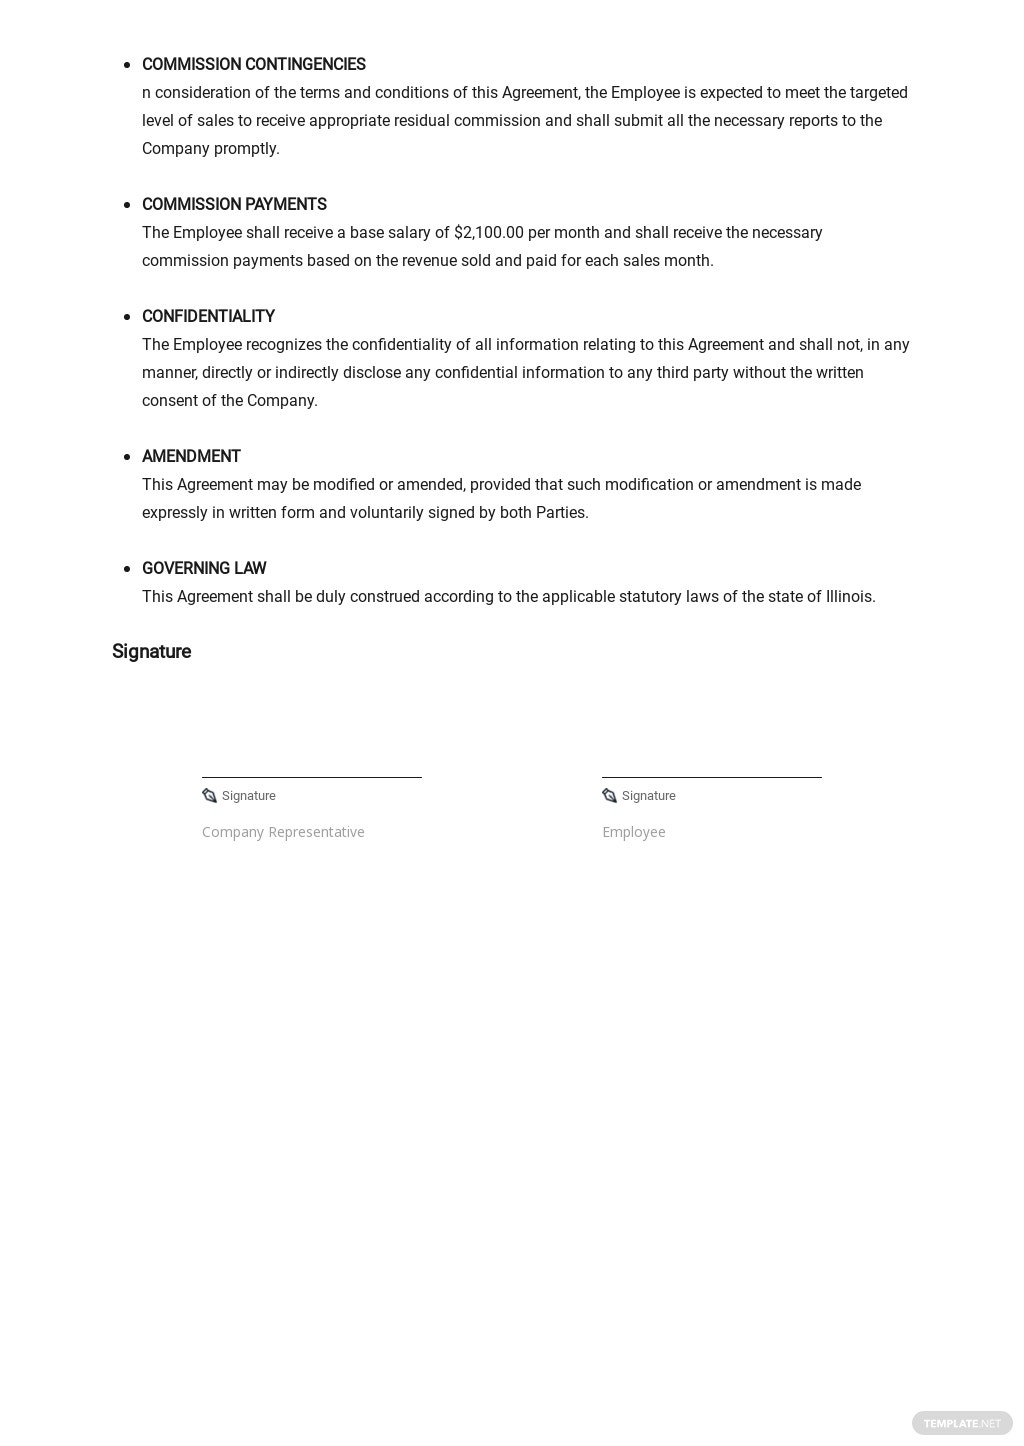 Commission Agreement Template 2.jpe